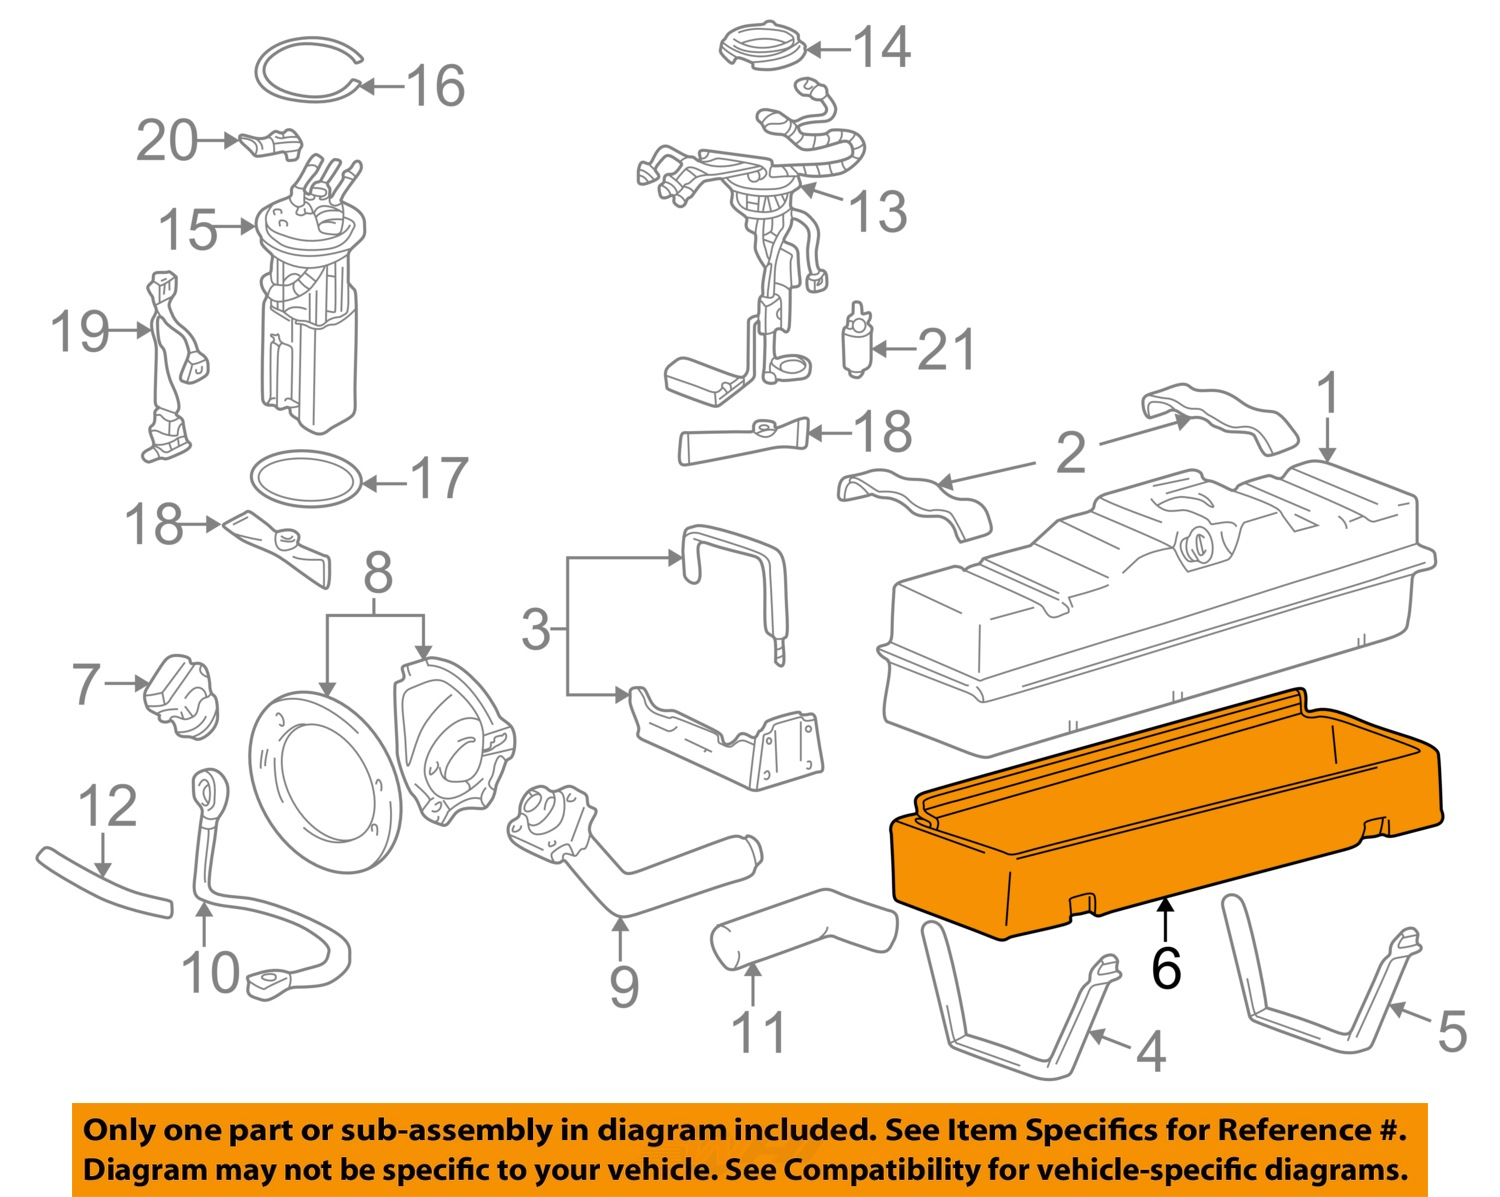 Gmc Envoy Parts Diagram List Wiring For Free Addition Stihl Chainsaw On Echo Additionally Hc 1500 And Type 2e 1 As Well